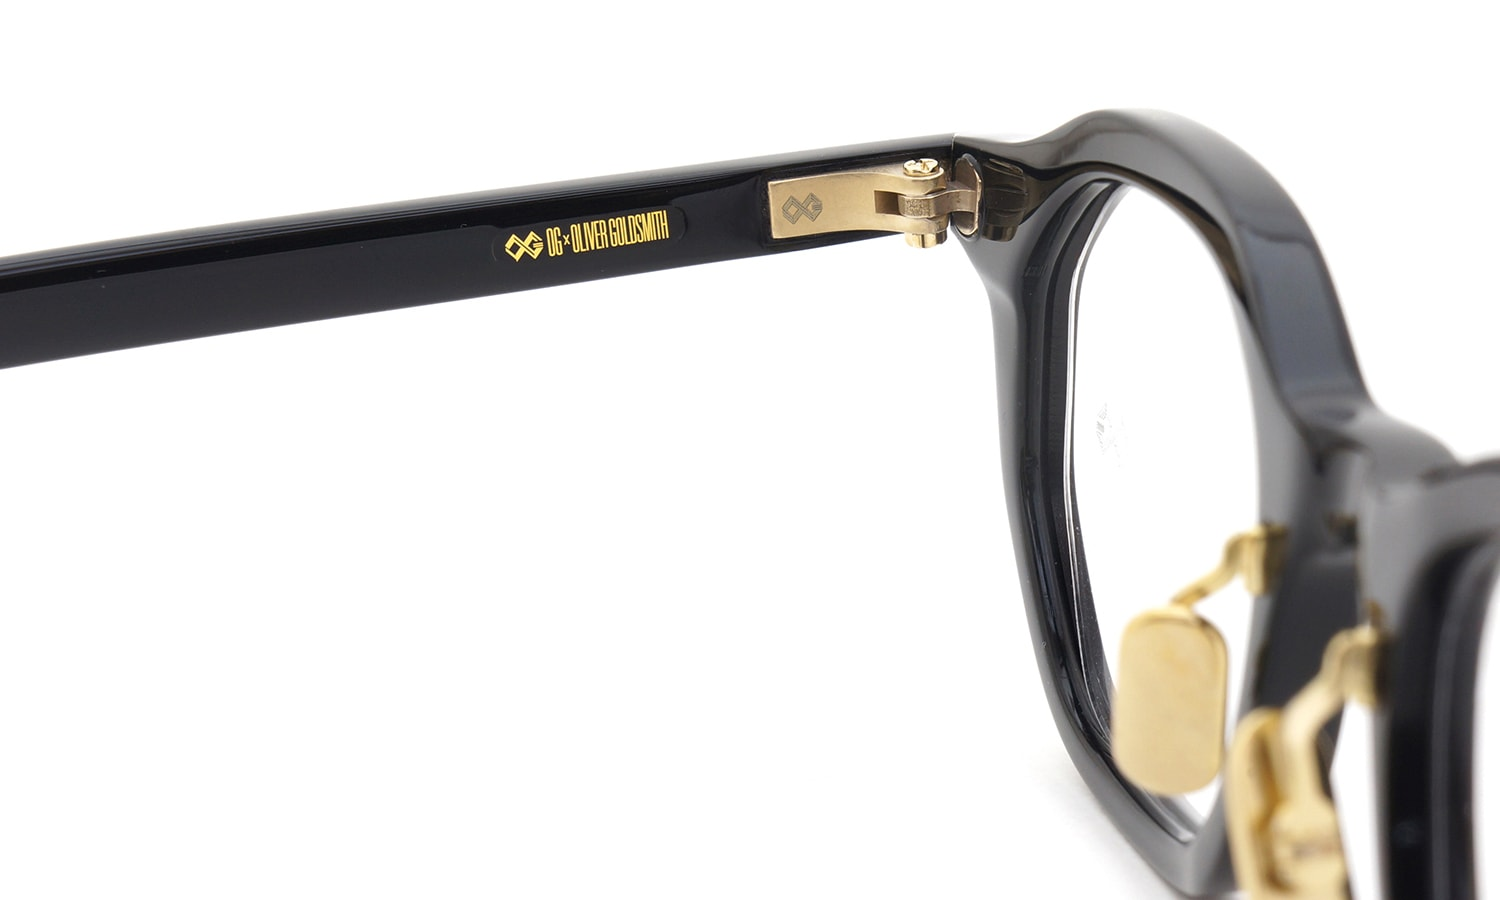 OG × OLIVER GOLDSMITH Re:BETSY 45 リ:ベッツィ 9